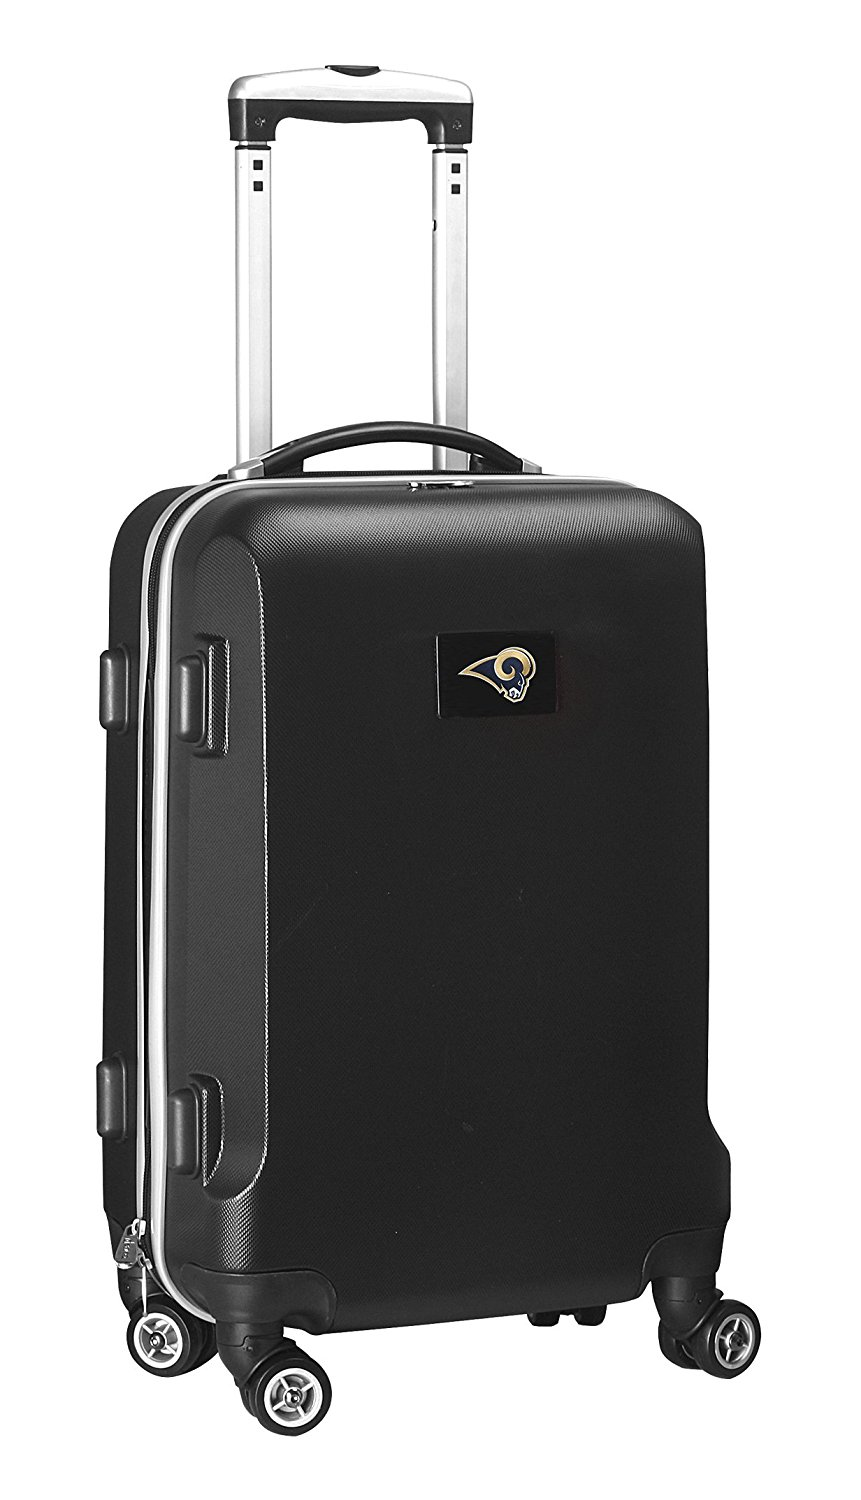 NFL St. Louis Rams Hardcase Domestic Carry-On Spinner, Black, 20-Inch